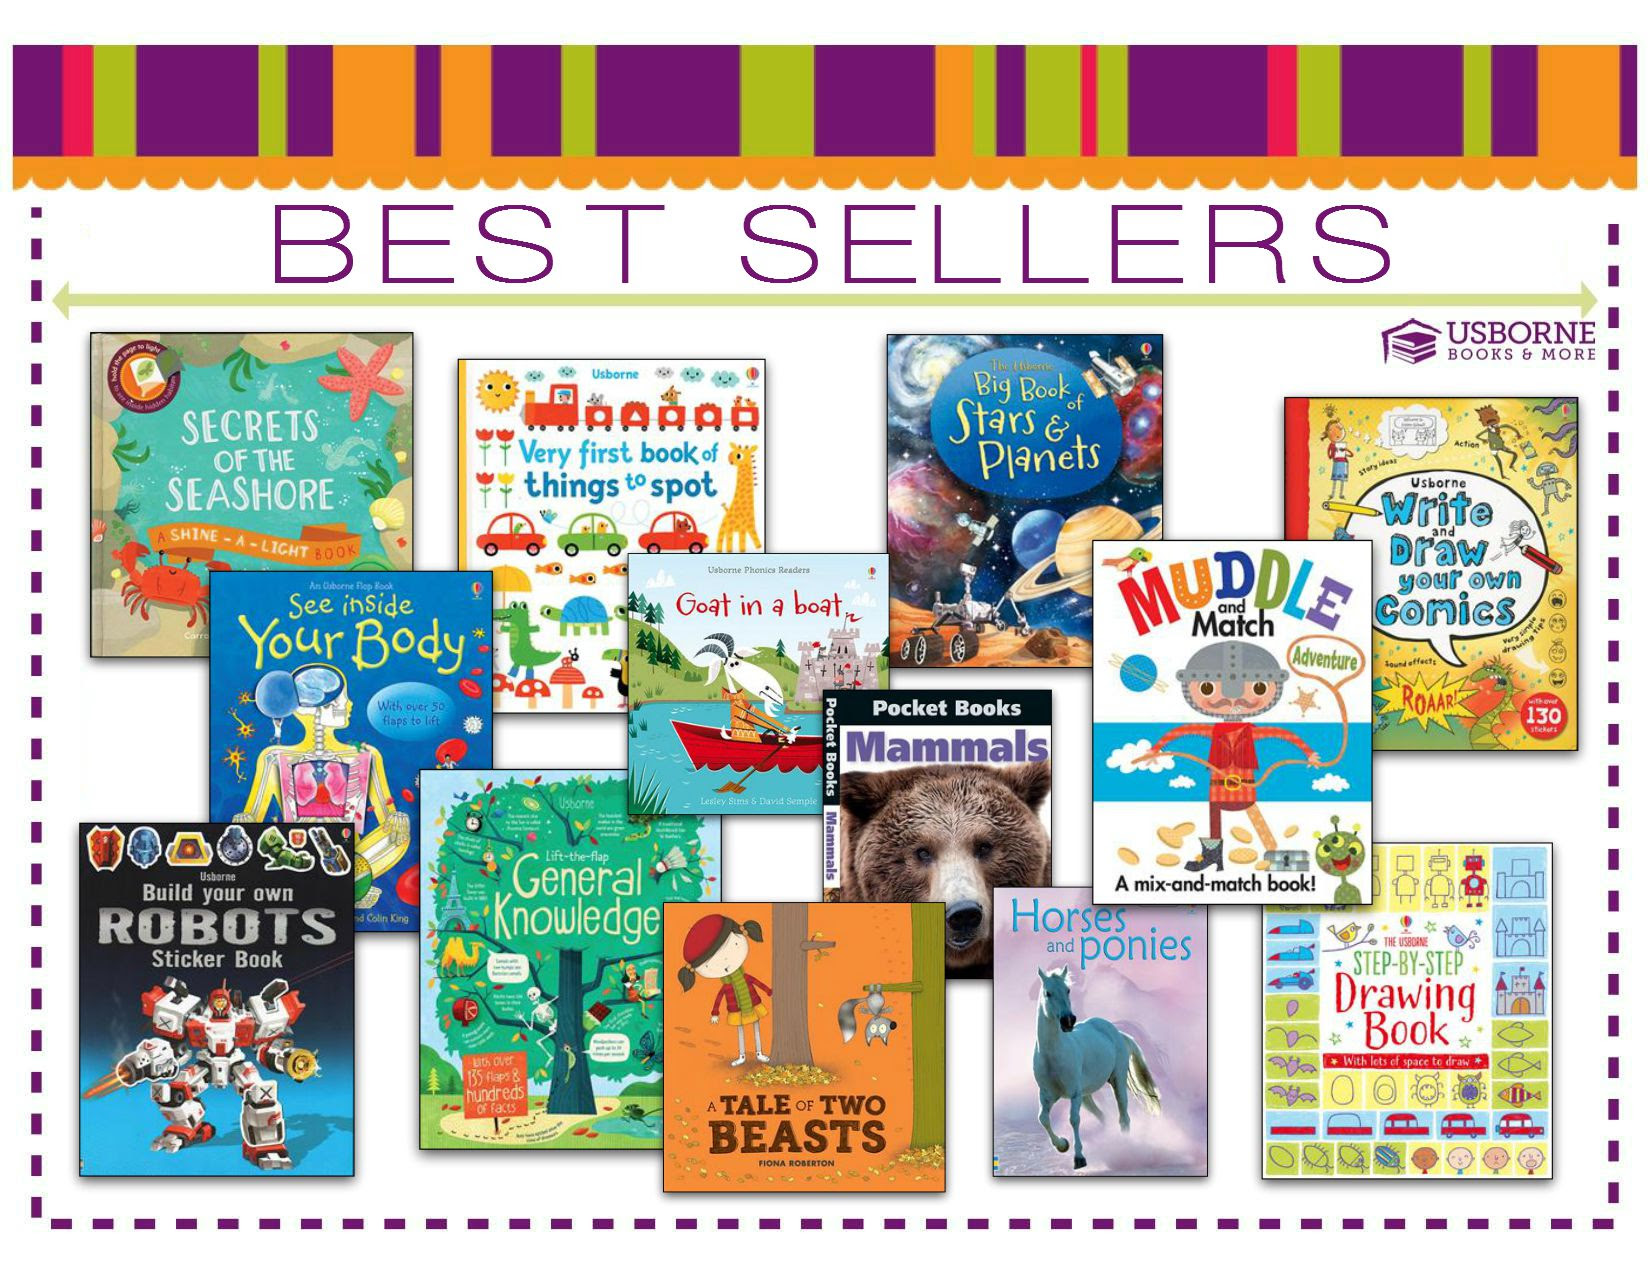 Usborne Books 11 Fascinating Facts You Should Know Before Joining Review